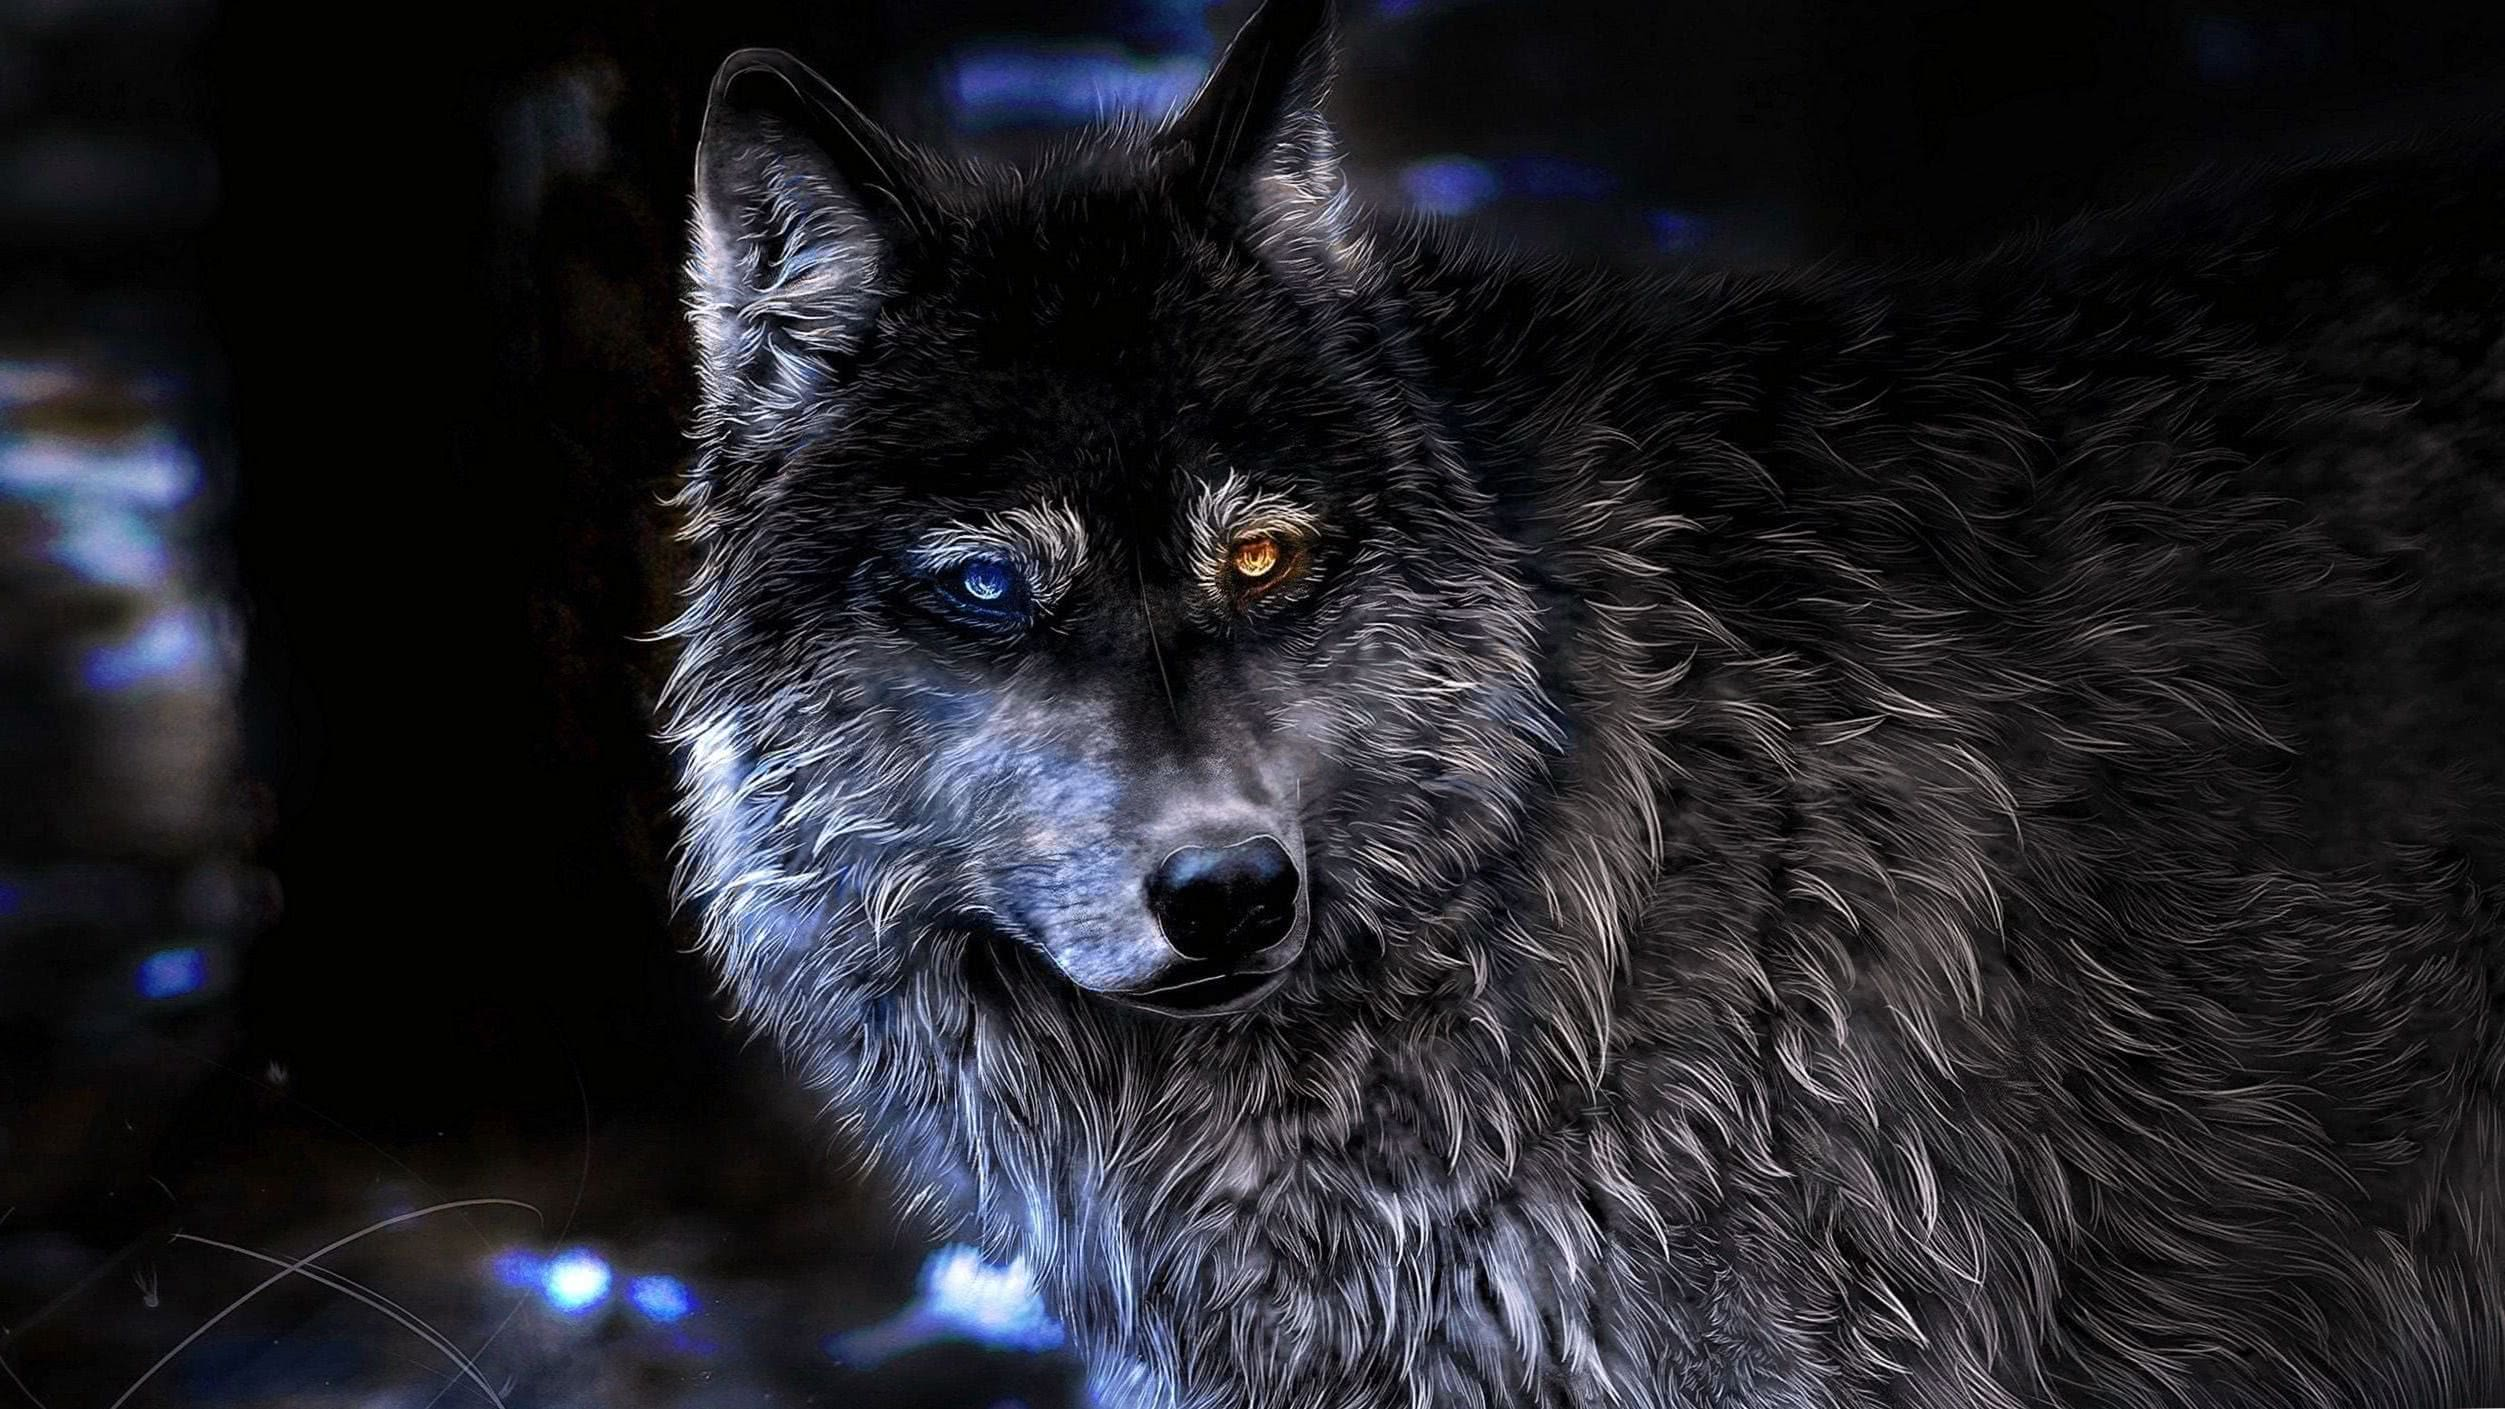 Wolf Wallpapers 2560x1440